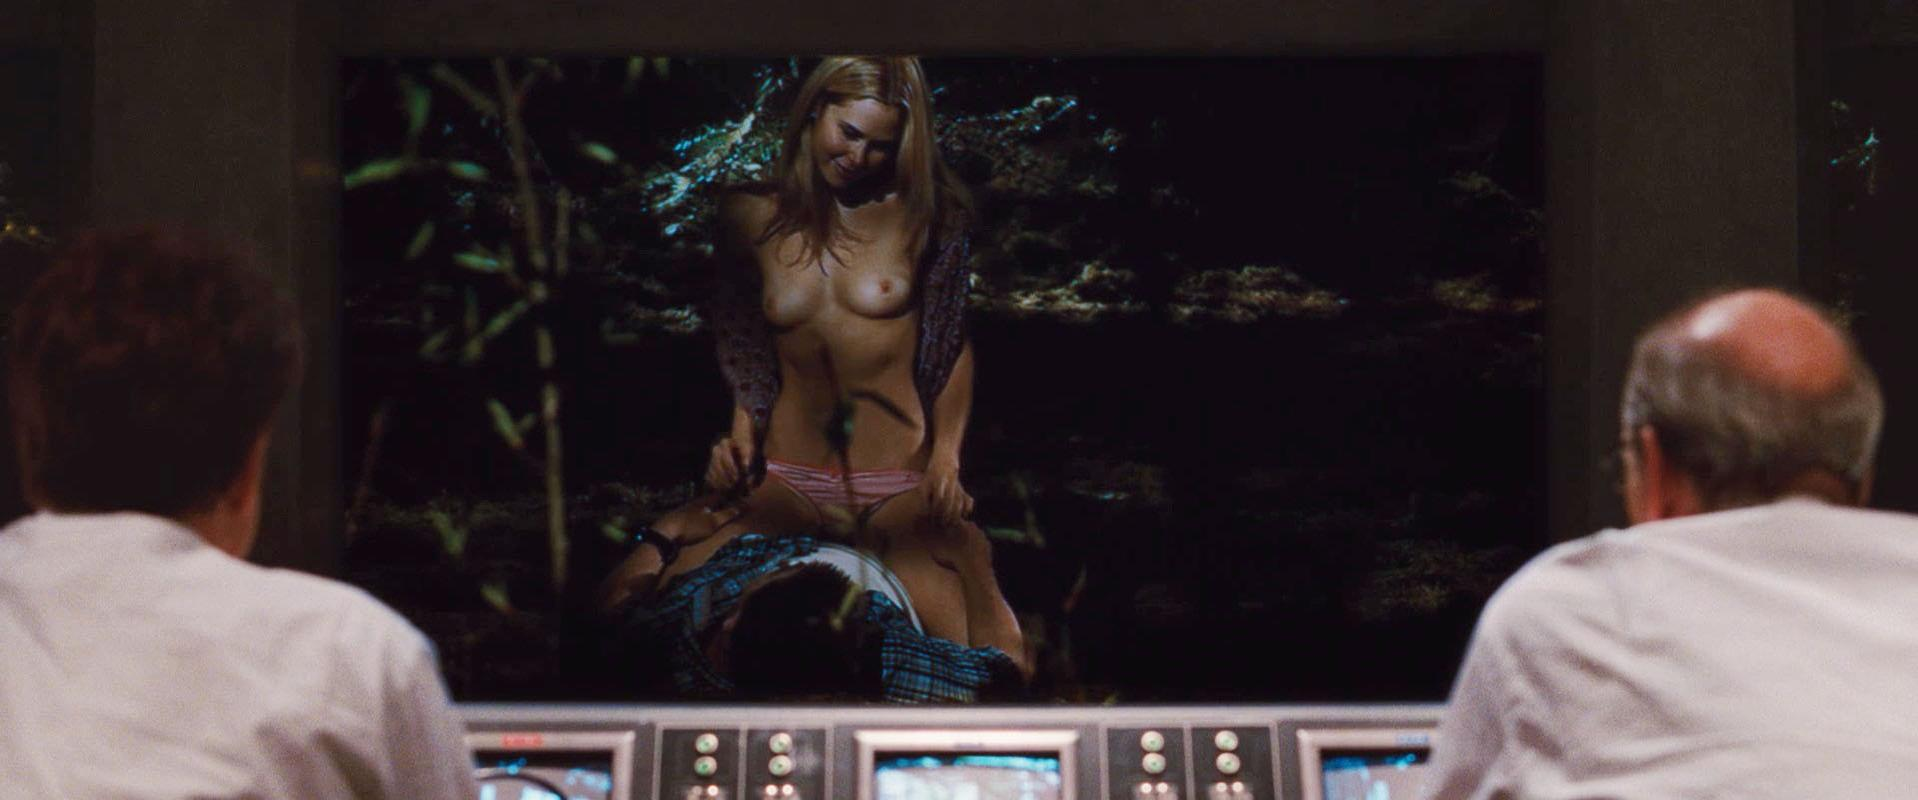 Cabin in the woods nudity